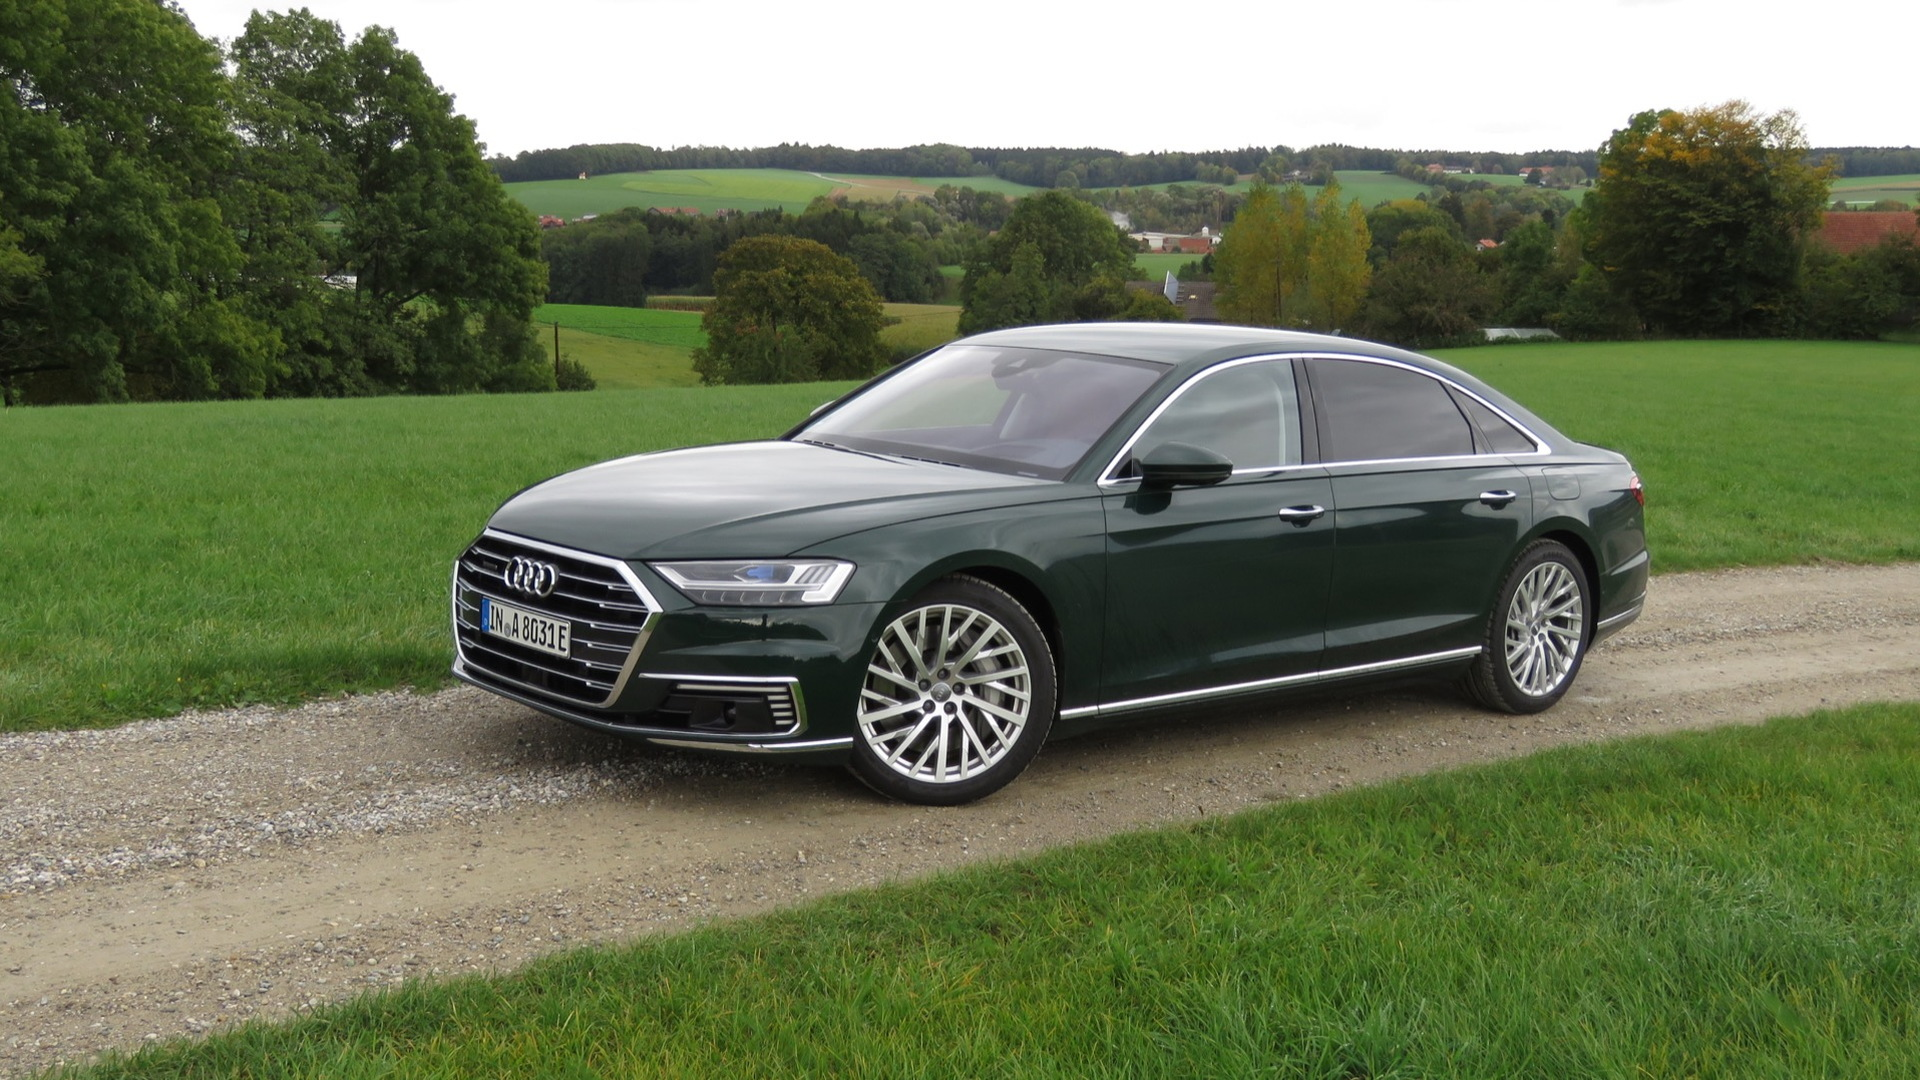 2020 Audi A8 plug-in hybrid (Euro spec)  -  first drive, October 2019